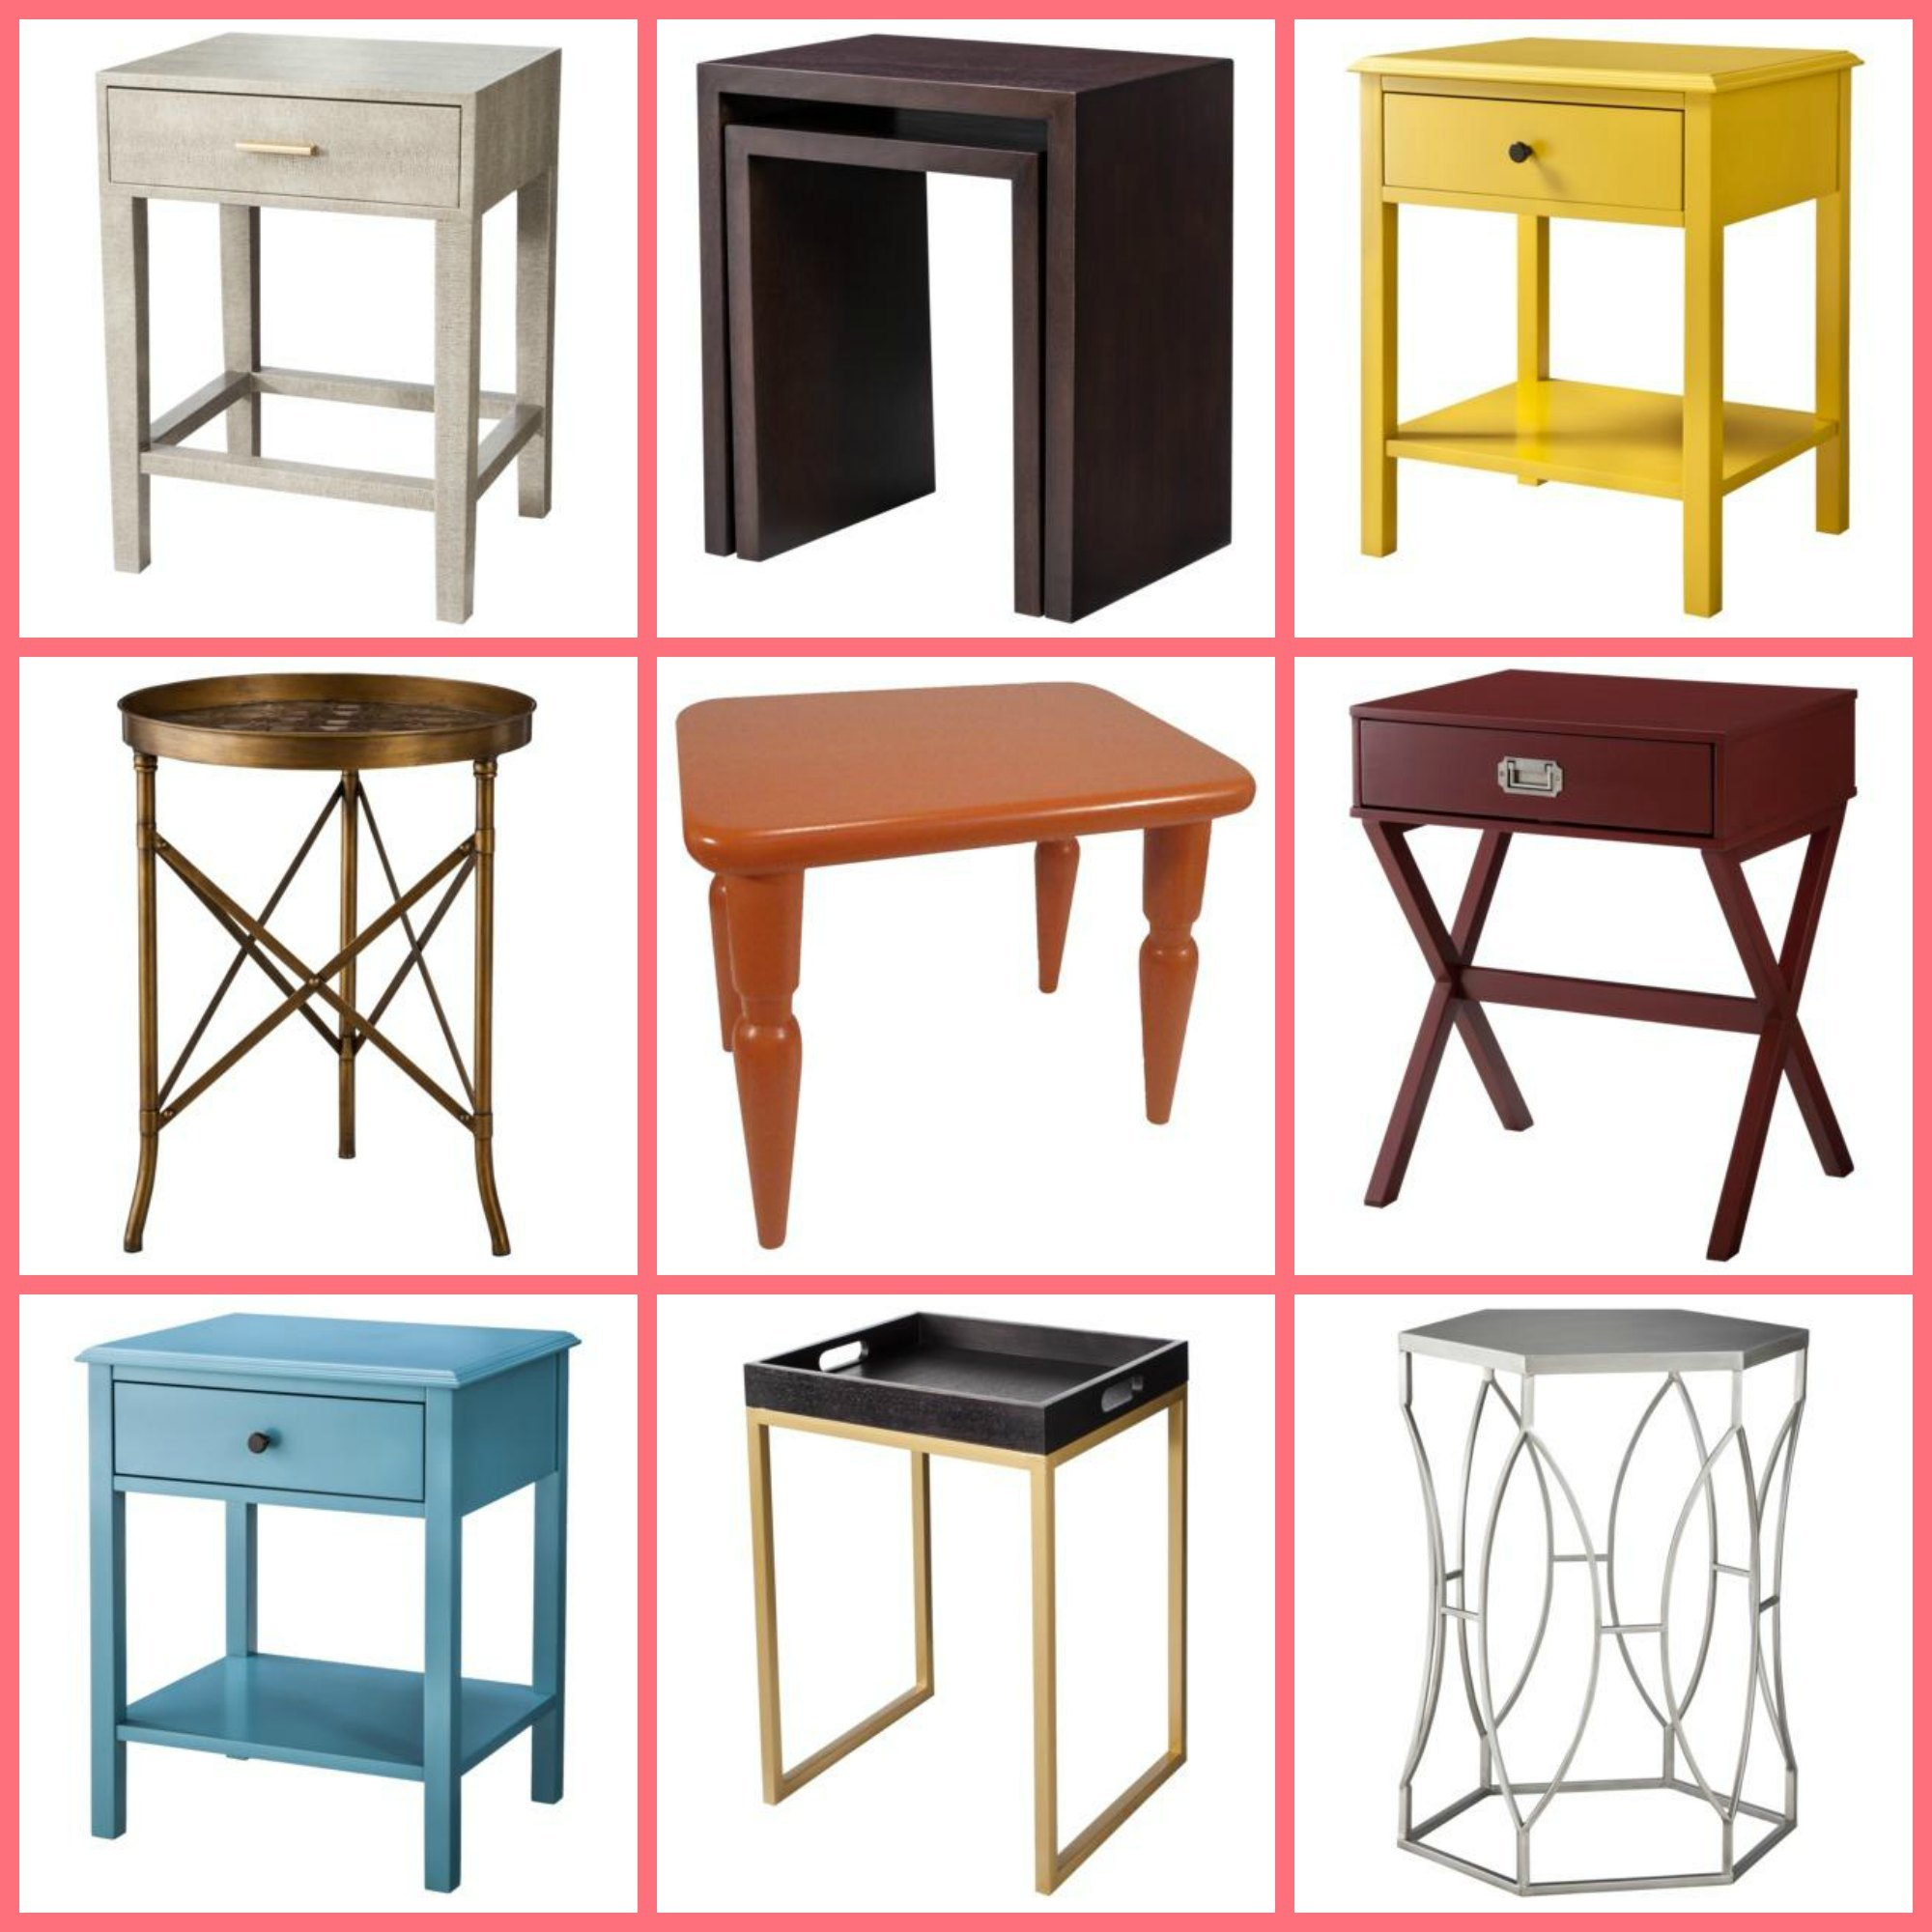 target threshold accent tables take your targertthr fretwork table teal clockwise from top left hall console nate berkus lamp order legs nautical dining room small wrought iron